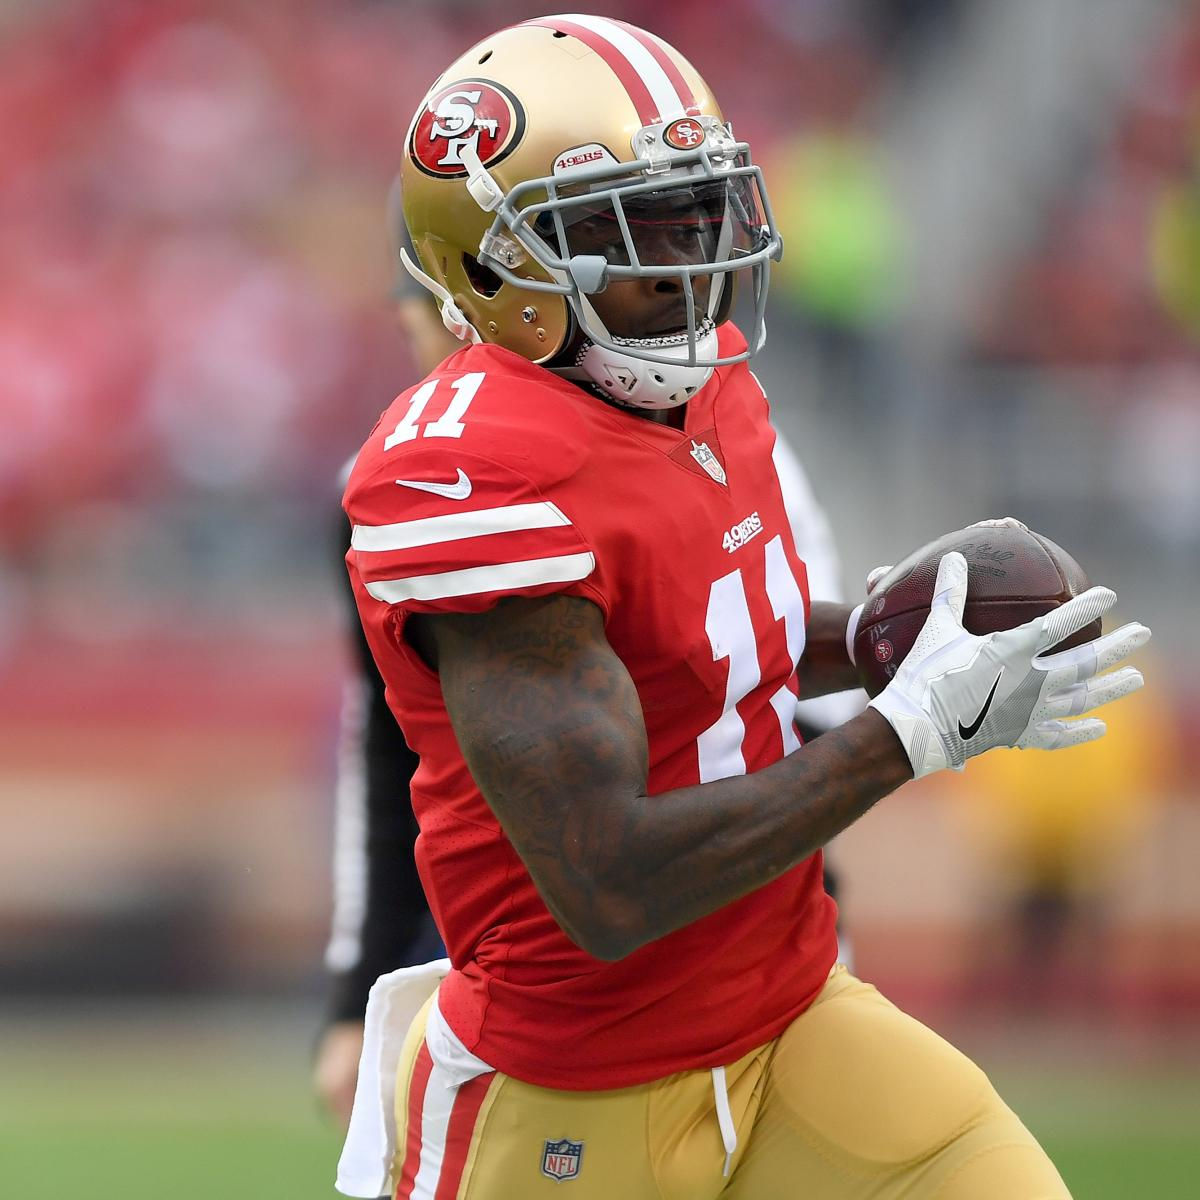 Nfl1000 Rookie Review From Week 9: Marquise Goodwin Out For Week 2 Vs. Lions After Suffering